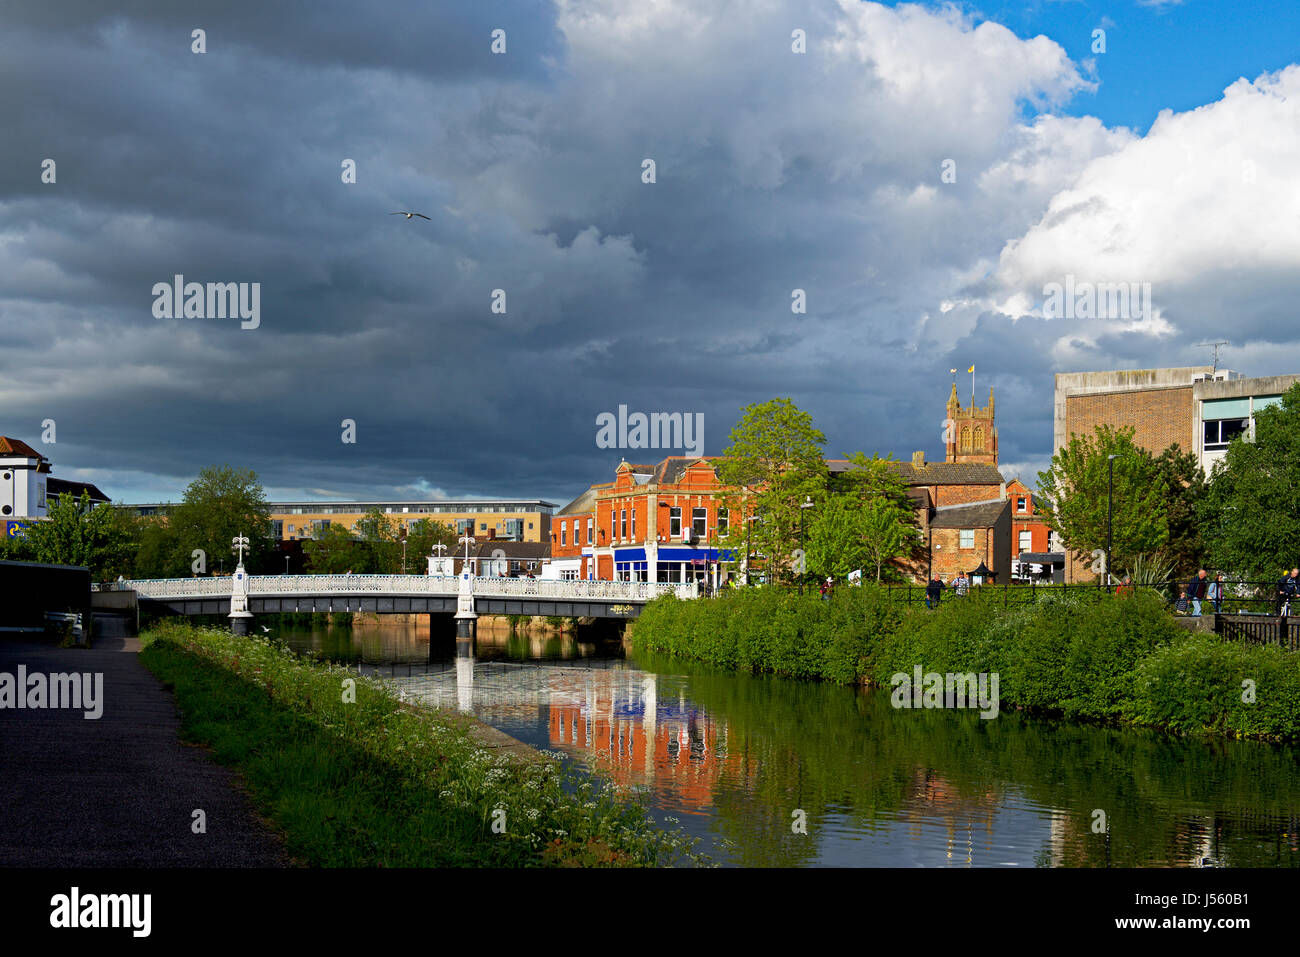 The River Tone in Taunton, Somerset, England UK - Stock Image